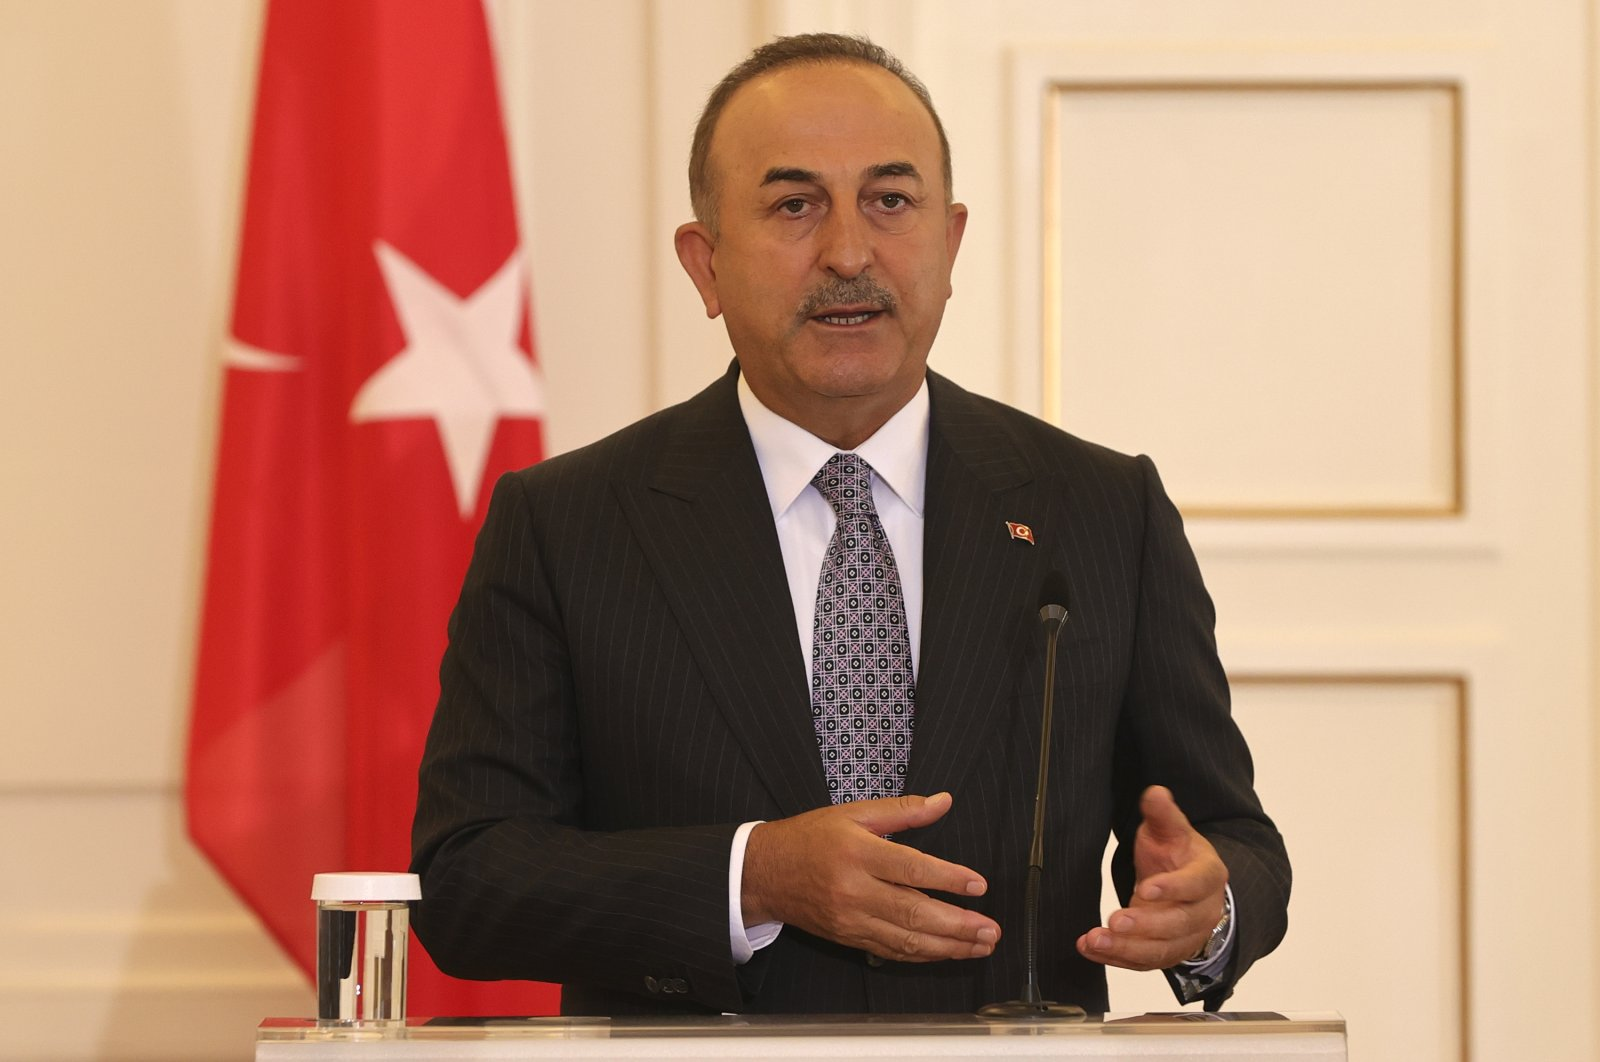 Turkish Foreign Minister Mevlüt Çavuşoğlu speaks during a press conference with his Greek counterpart Nikos Dendias at the Ministry of Foreign Affairs in Athens, Greece, May 31, 2021. (AA Photo)